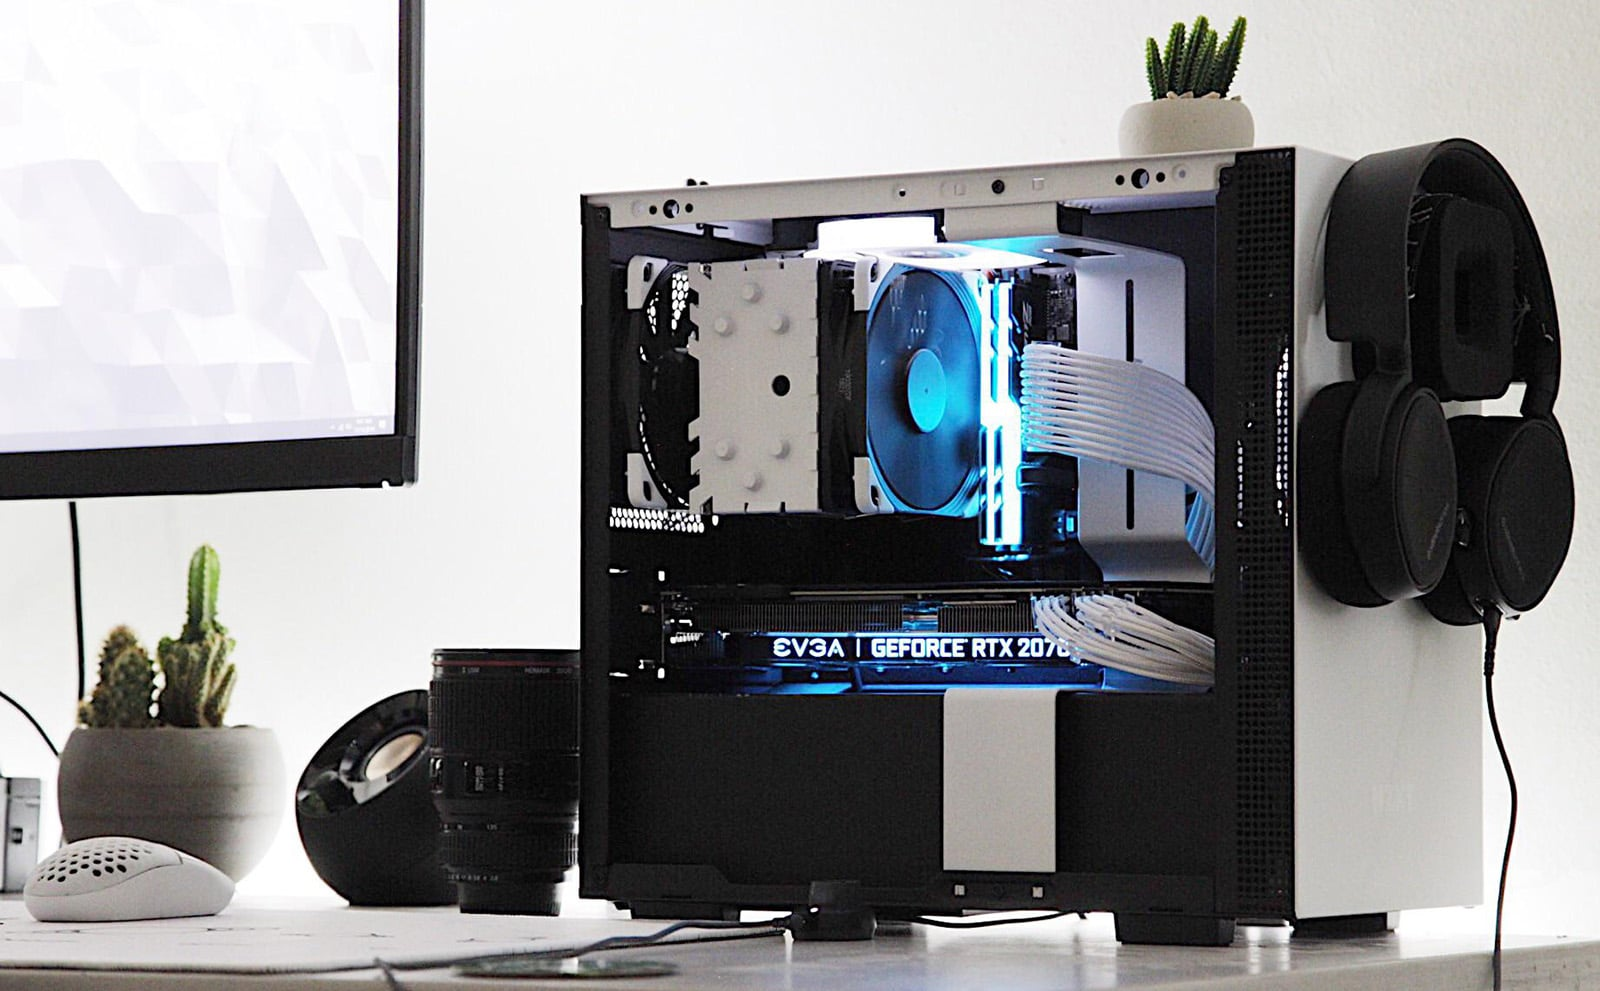 The NZXT Puck headphone mount is one of a kind